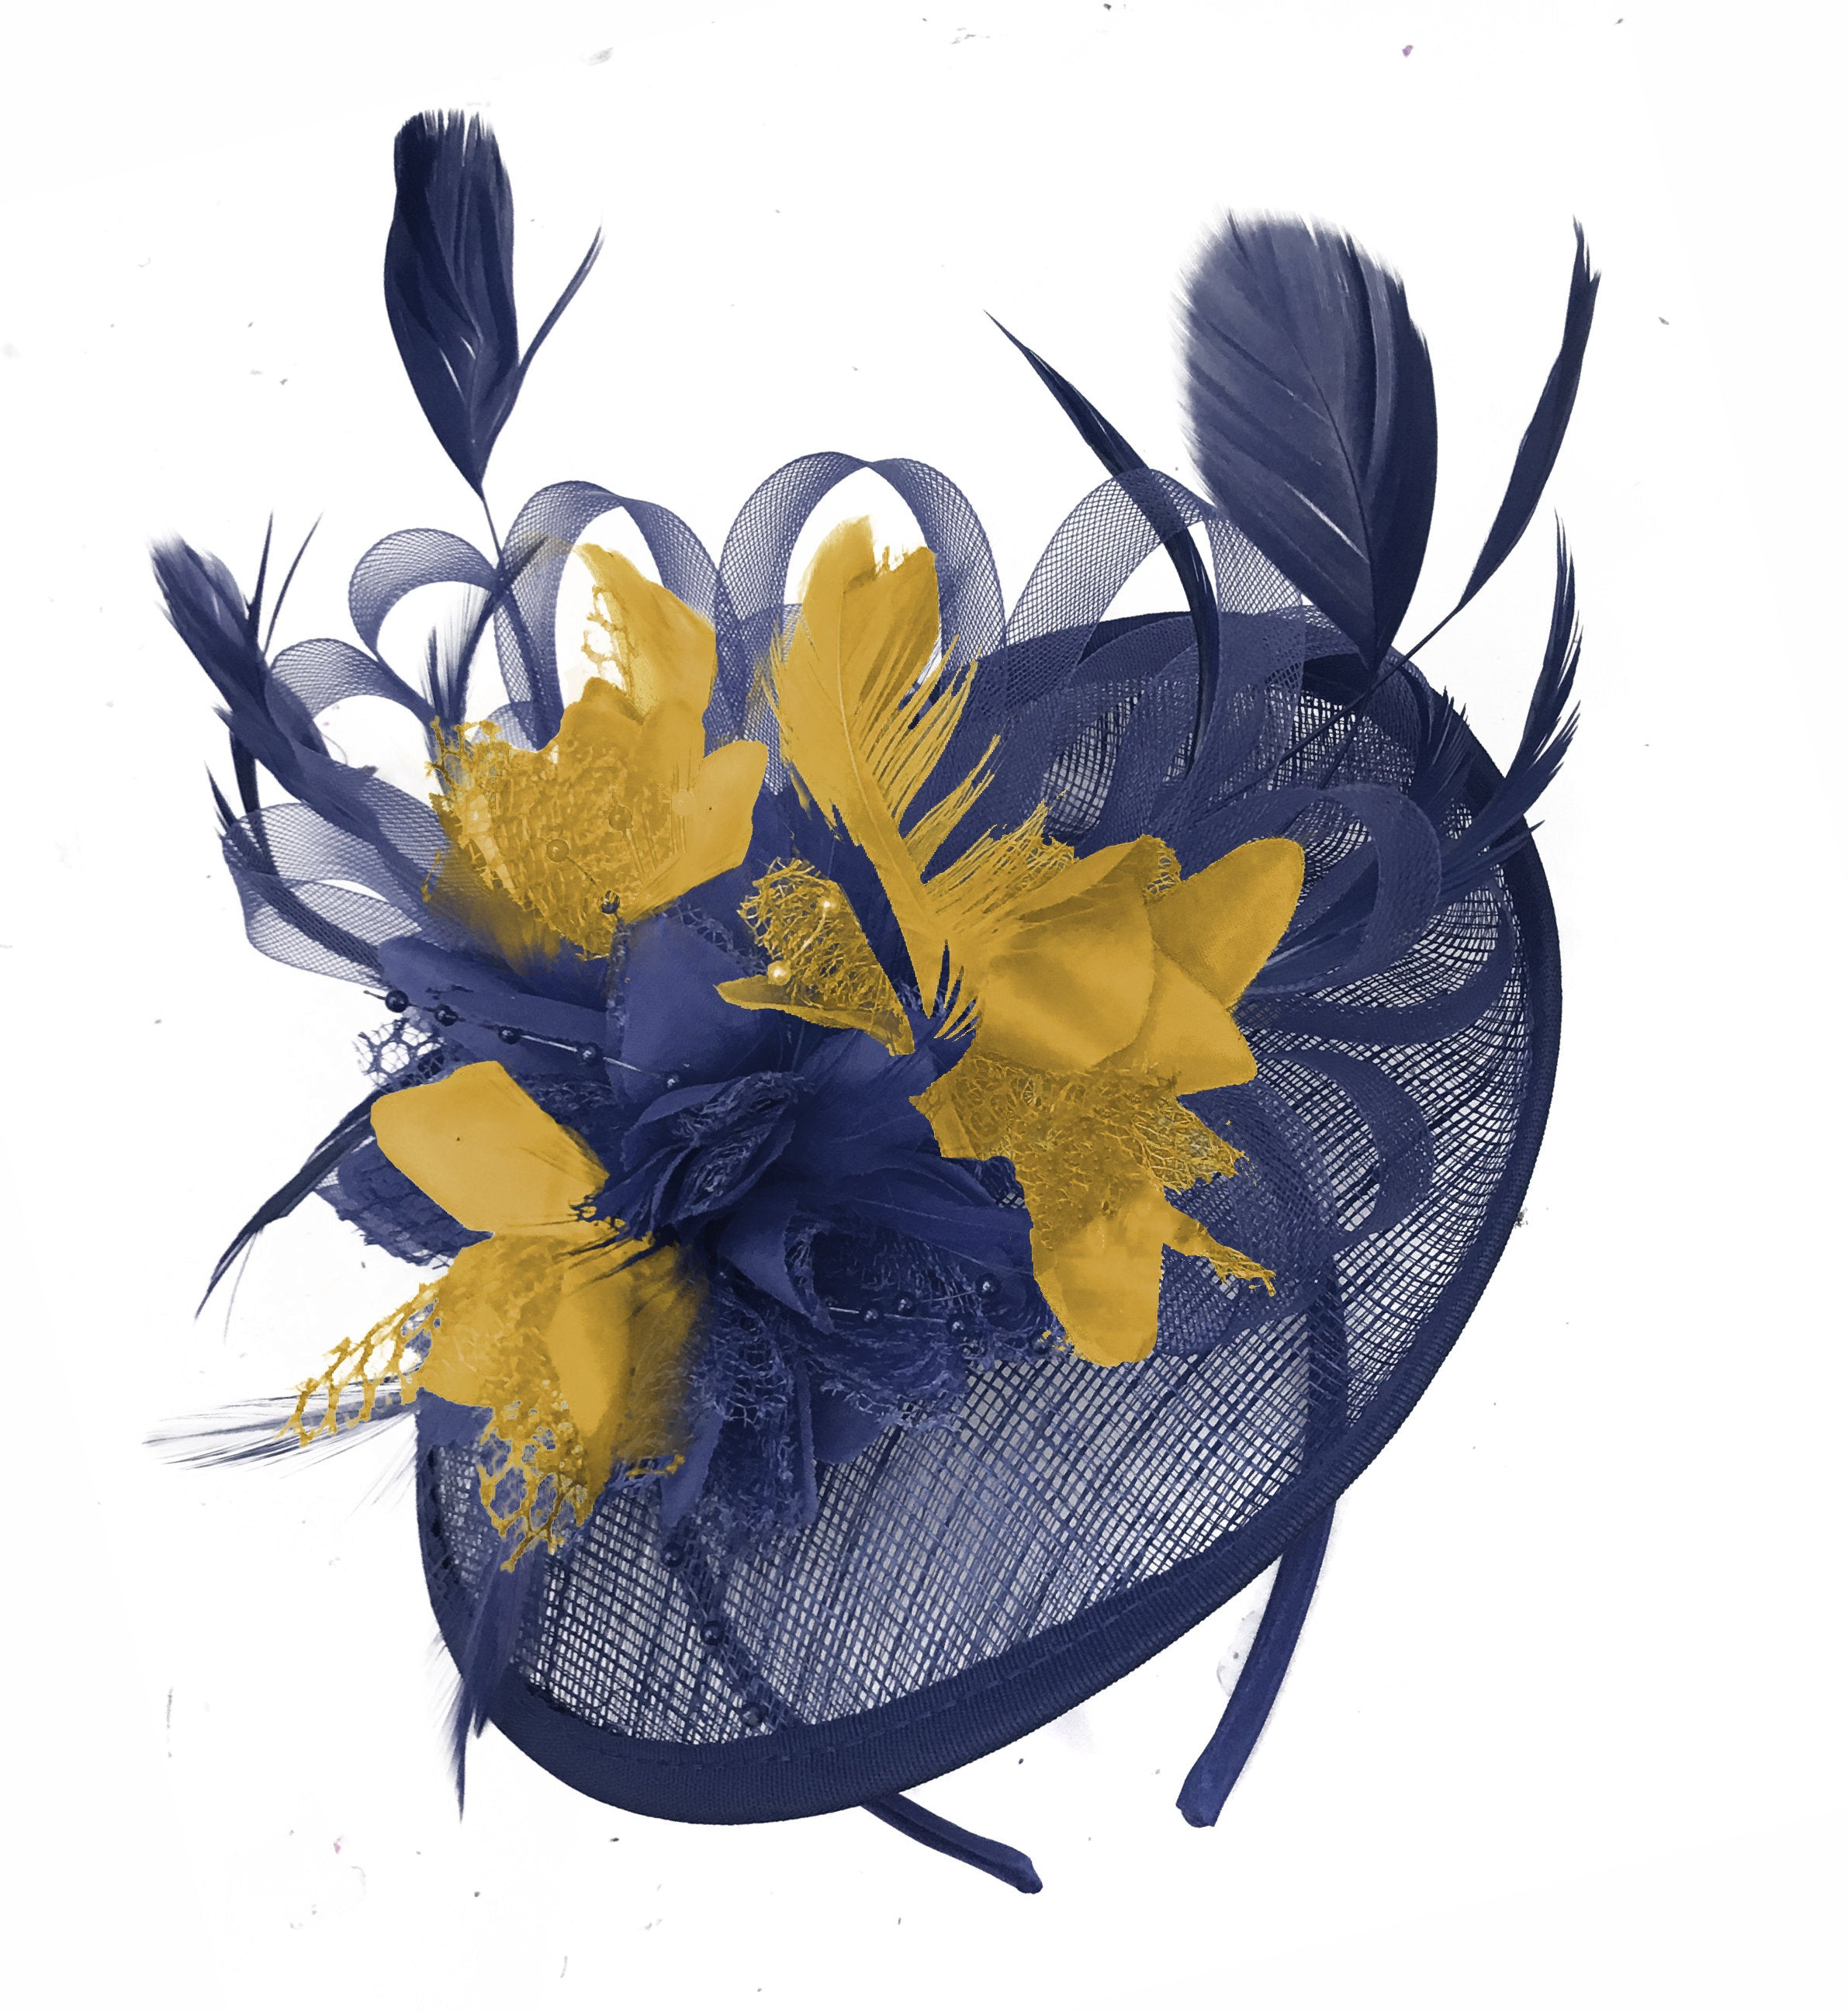 Caprilite Sinamay Navy Blue and Mustard Yellow Disc Saucer Fascinator Hat for Women Weddings Headband